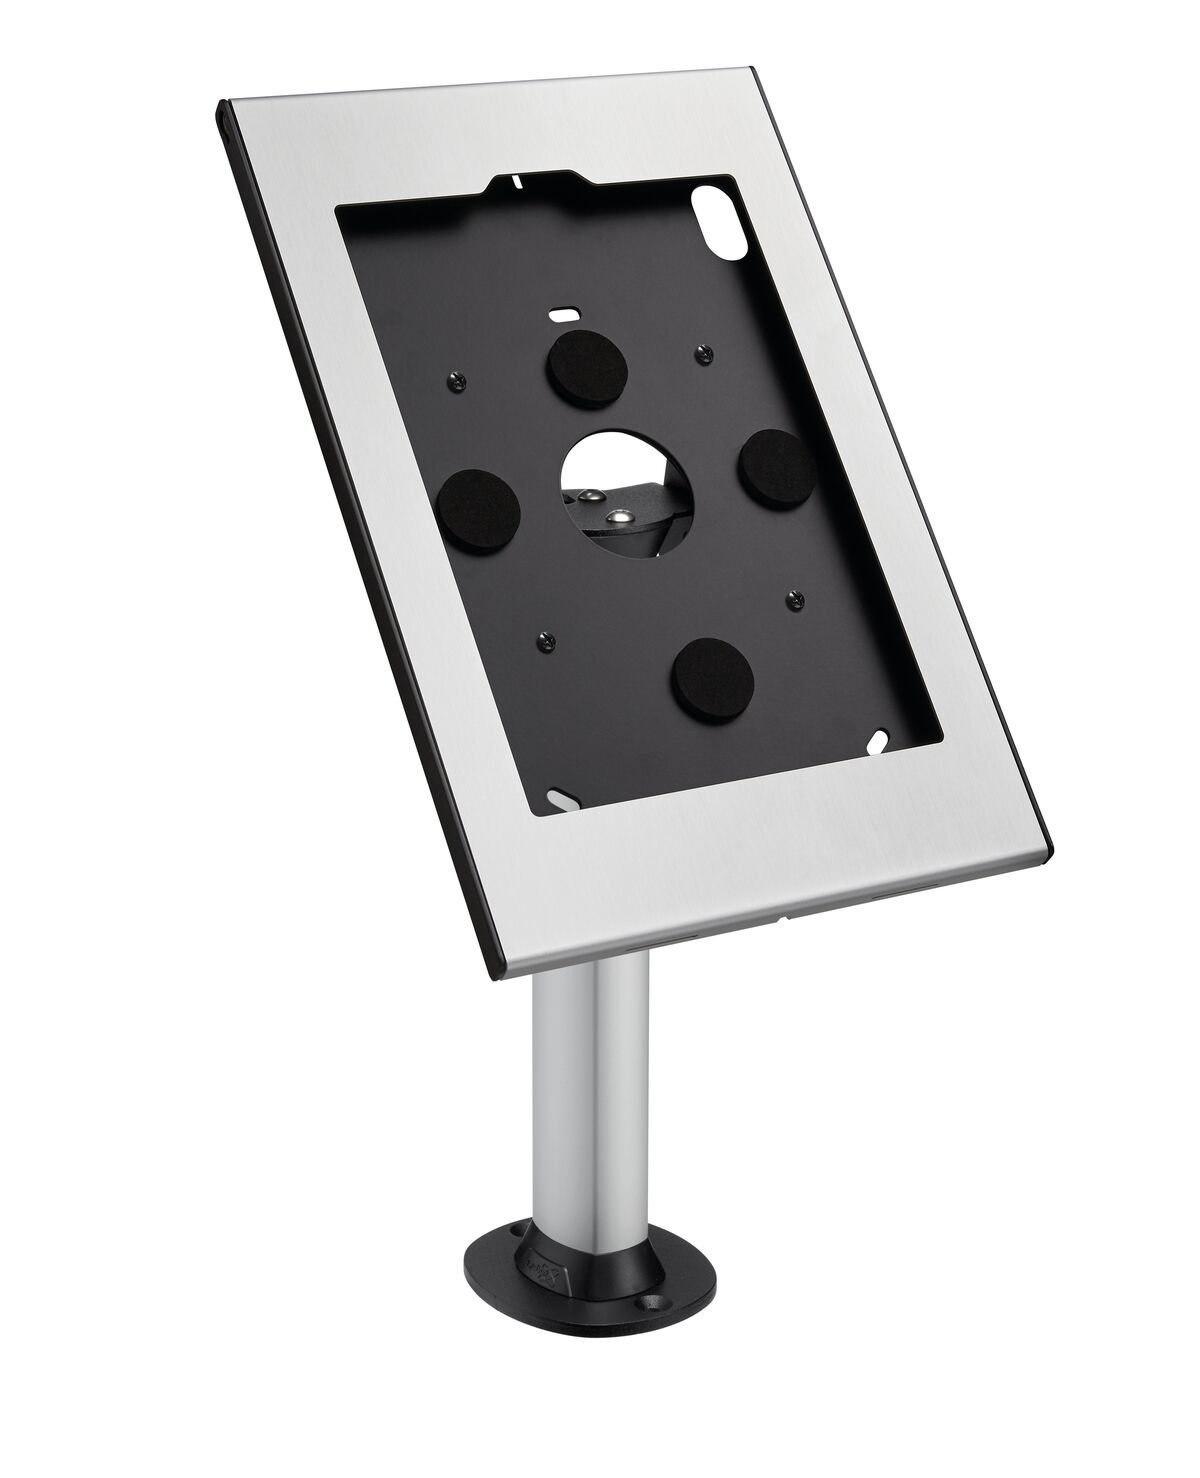 Vogel's PTS 1234 TabLock pour iPad Pro 12.9 (2018) - Application